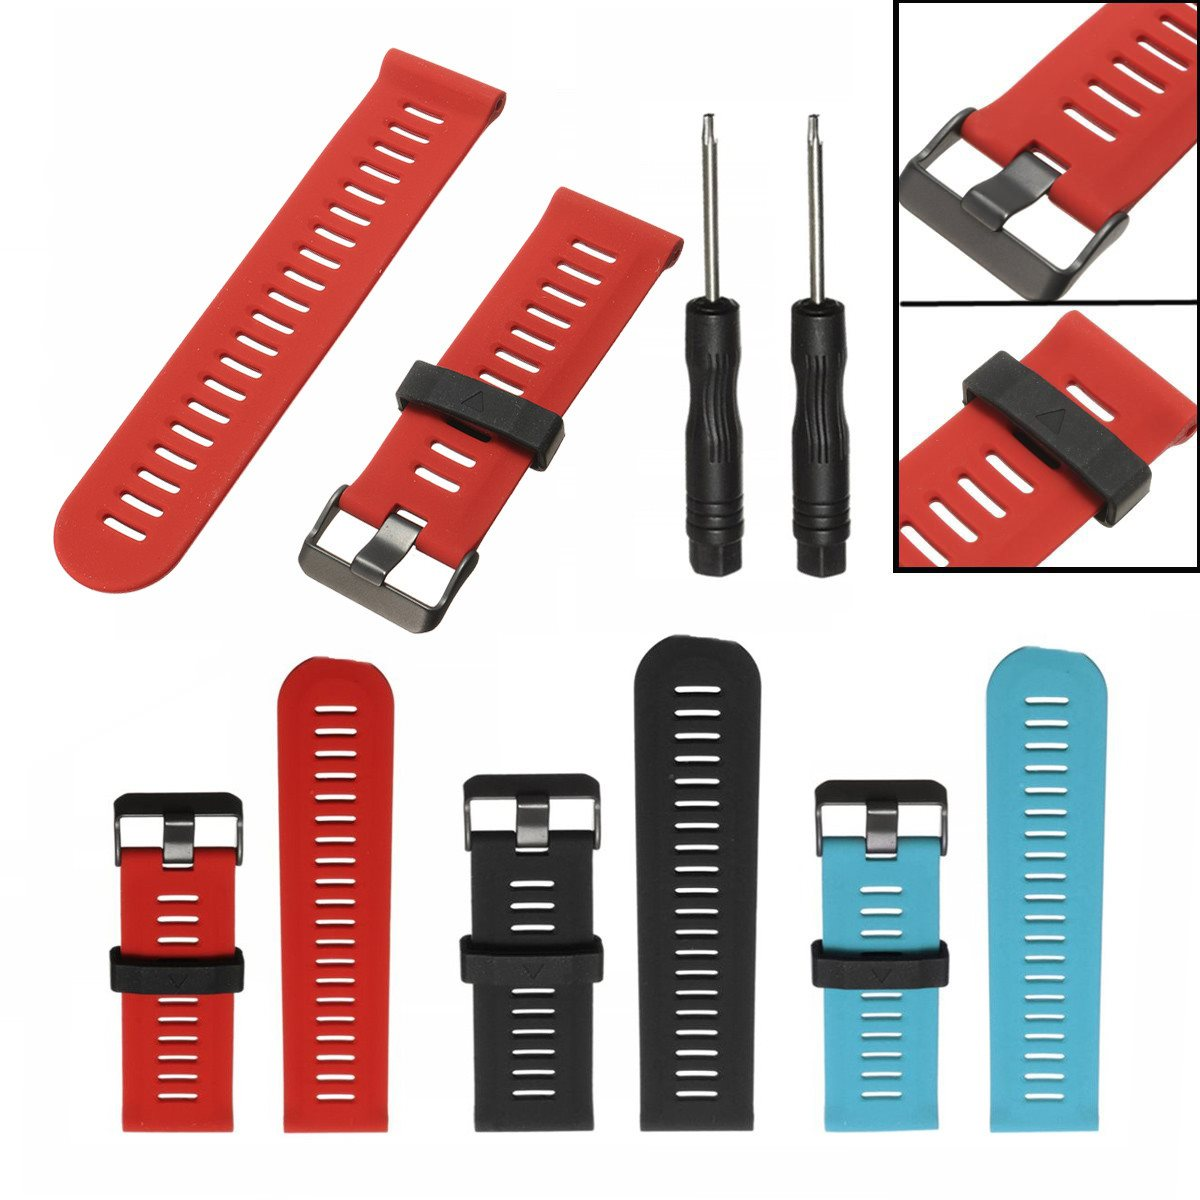 26mm Width Colorful Outdoor Sport Silicone Wrist Strap Replacement Watchband With Tools For Garmin Fenix 3 Watch Accessories replacement silicone watchband strap for garmin d2 fenix fenix2 fenix3 fenix3 hrtactix watch lugs adapters tools correa reloj